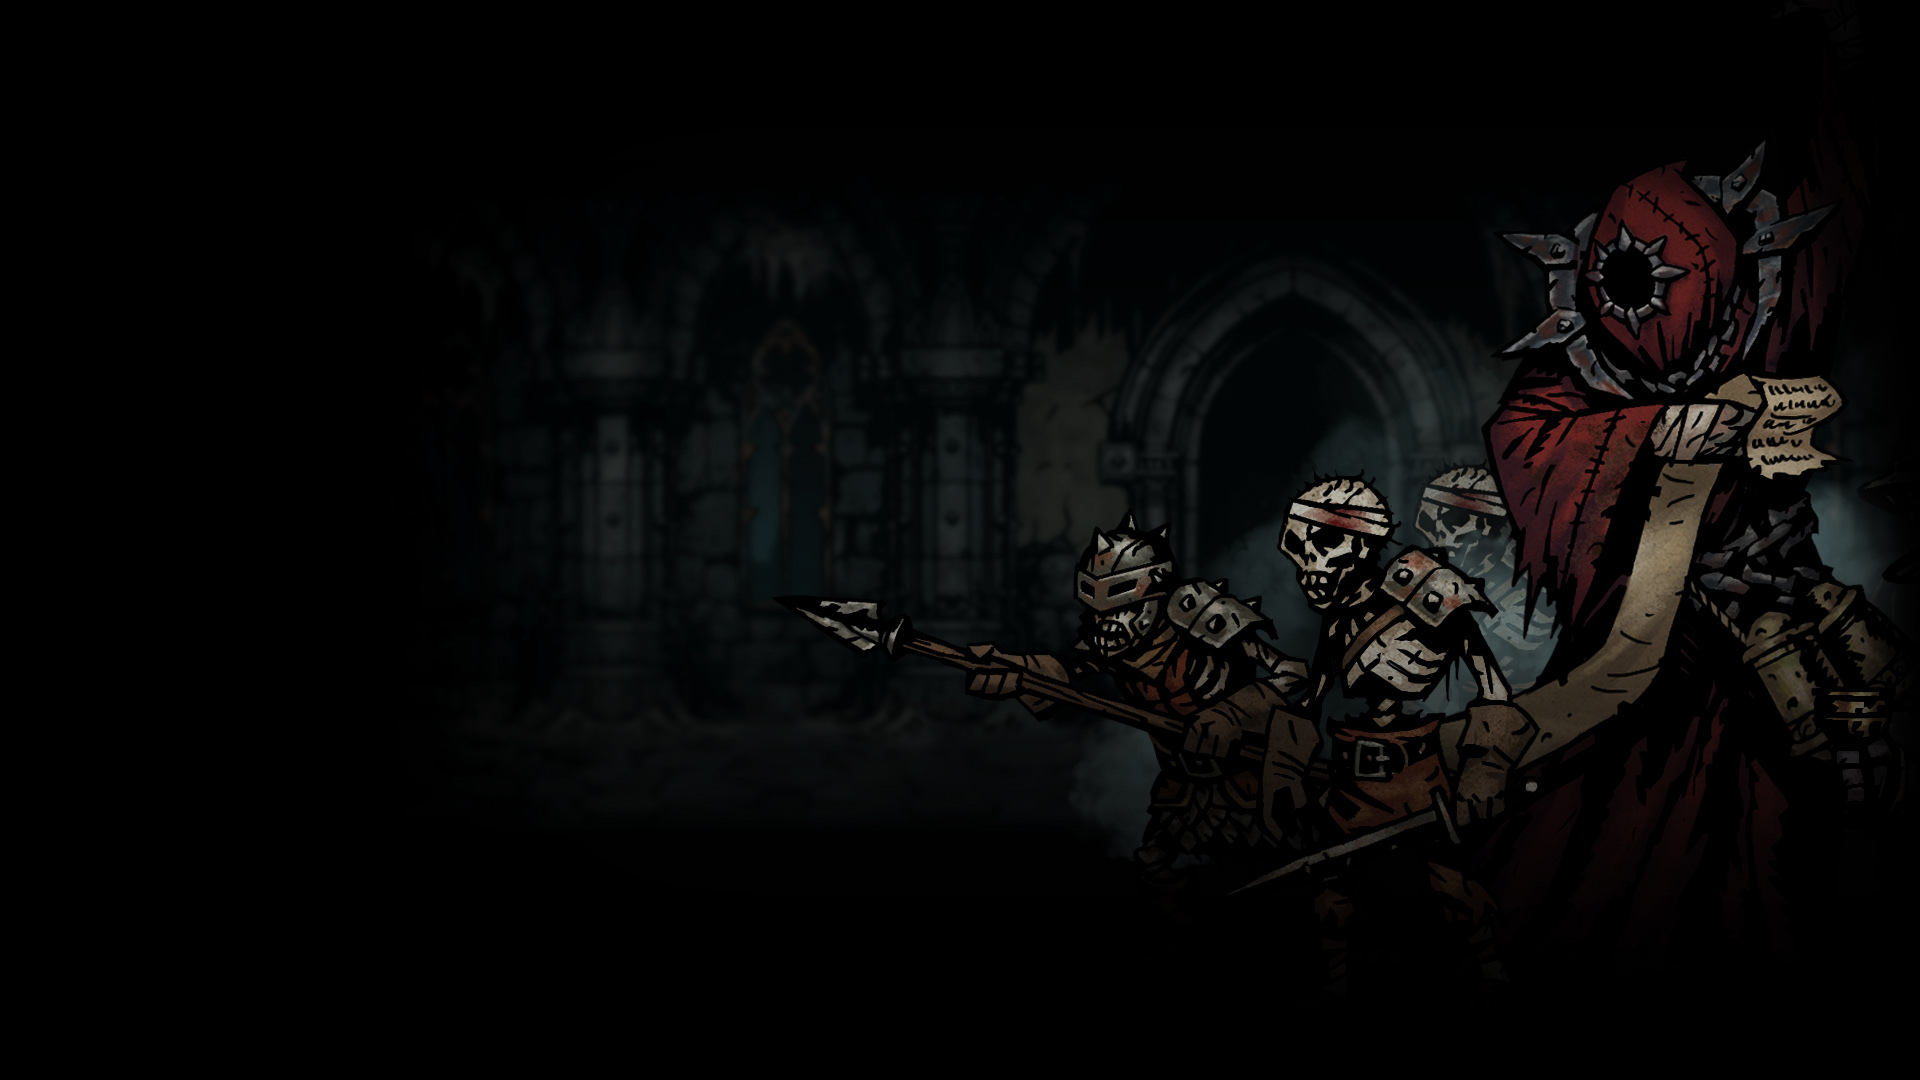 Darkest Dungeon Wallpapers, Pictures, Images